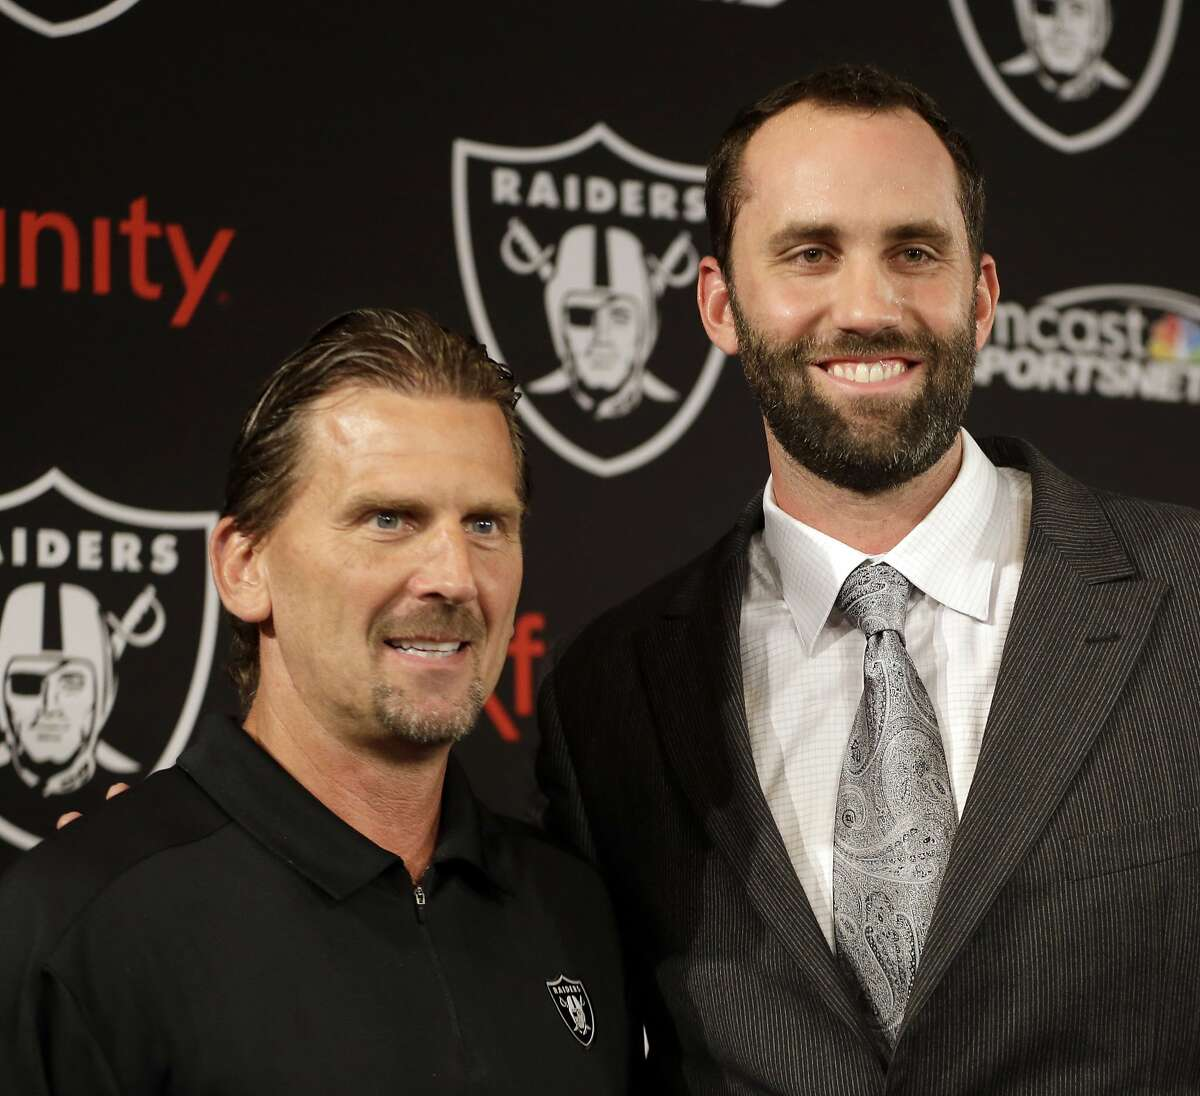 Oakland Raiders quarterback Matt Schaub, right, stands with offensive coordinator Greg Olson after a news conference Friday, March 21, 2014, at the NFL football team's practice facility in Alameda, Calif. Schaub and the Raiders are both hoping to put the mistakes of 2013 in the past. The Raiders acquired Schaub from Houston for an undisclosed draft pick, giving the quarterback a second chance after he lost his starting job with the Texans last season. (AP Photo/Ben Margot)